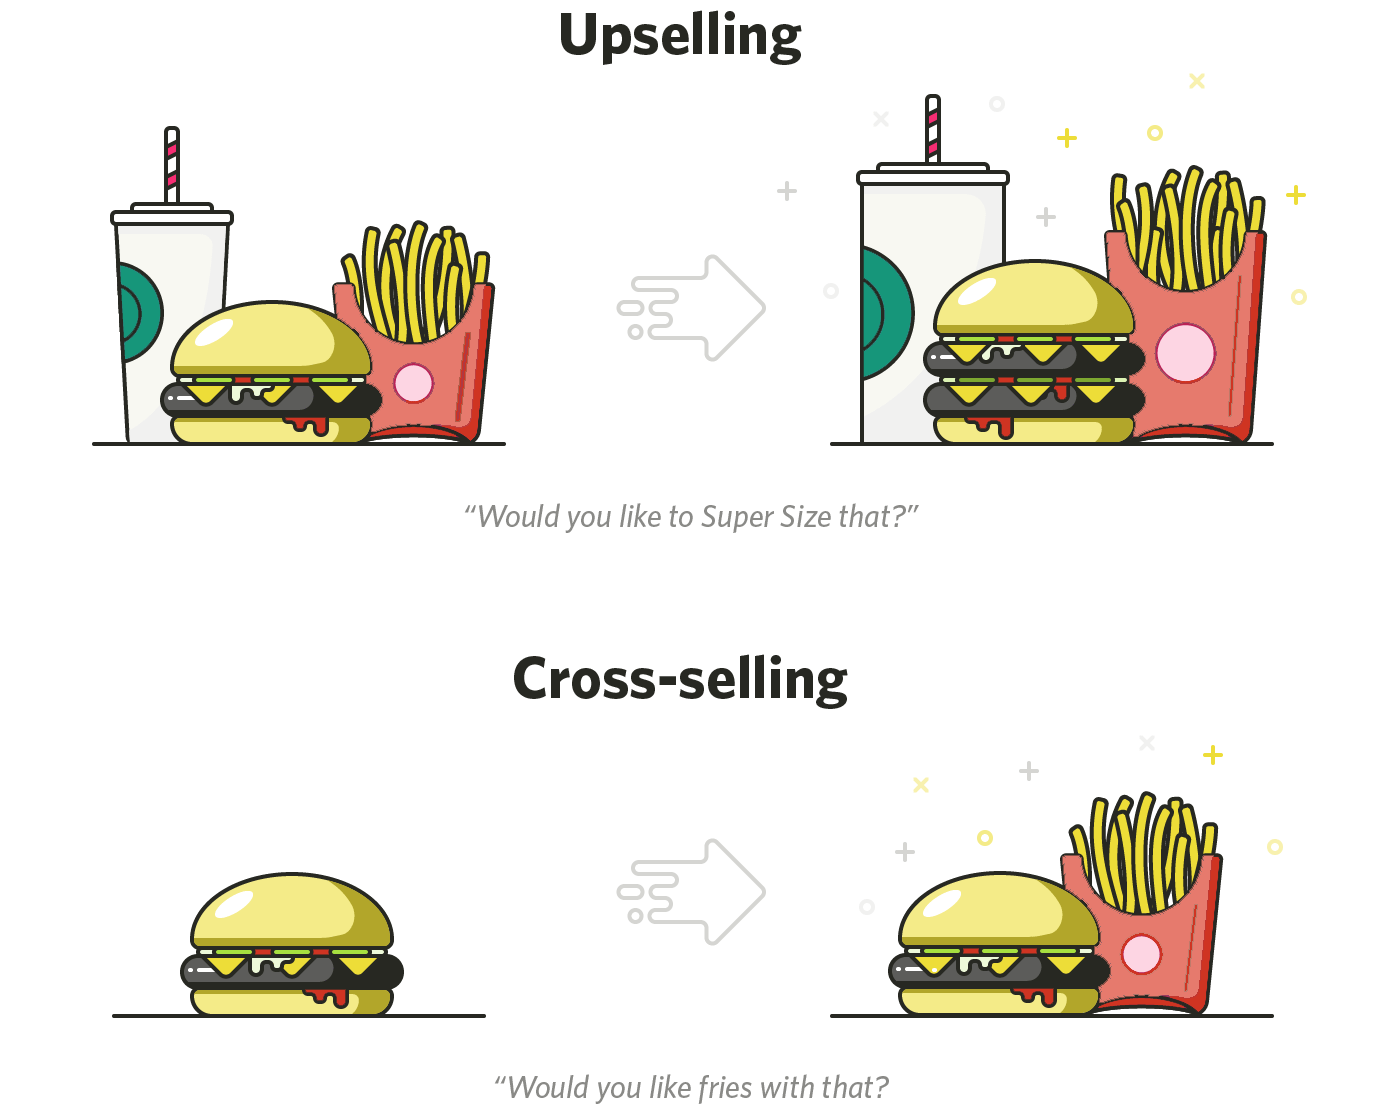 The difference between cross-selling and up-selling